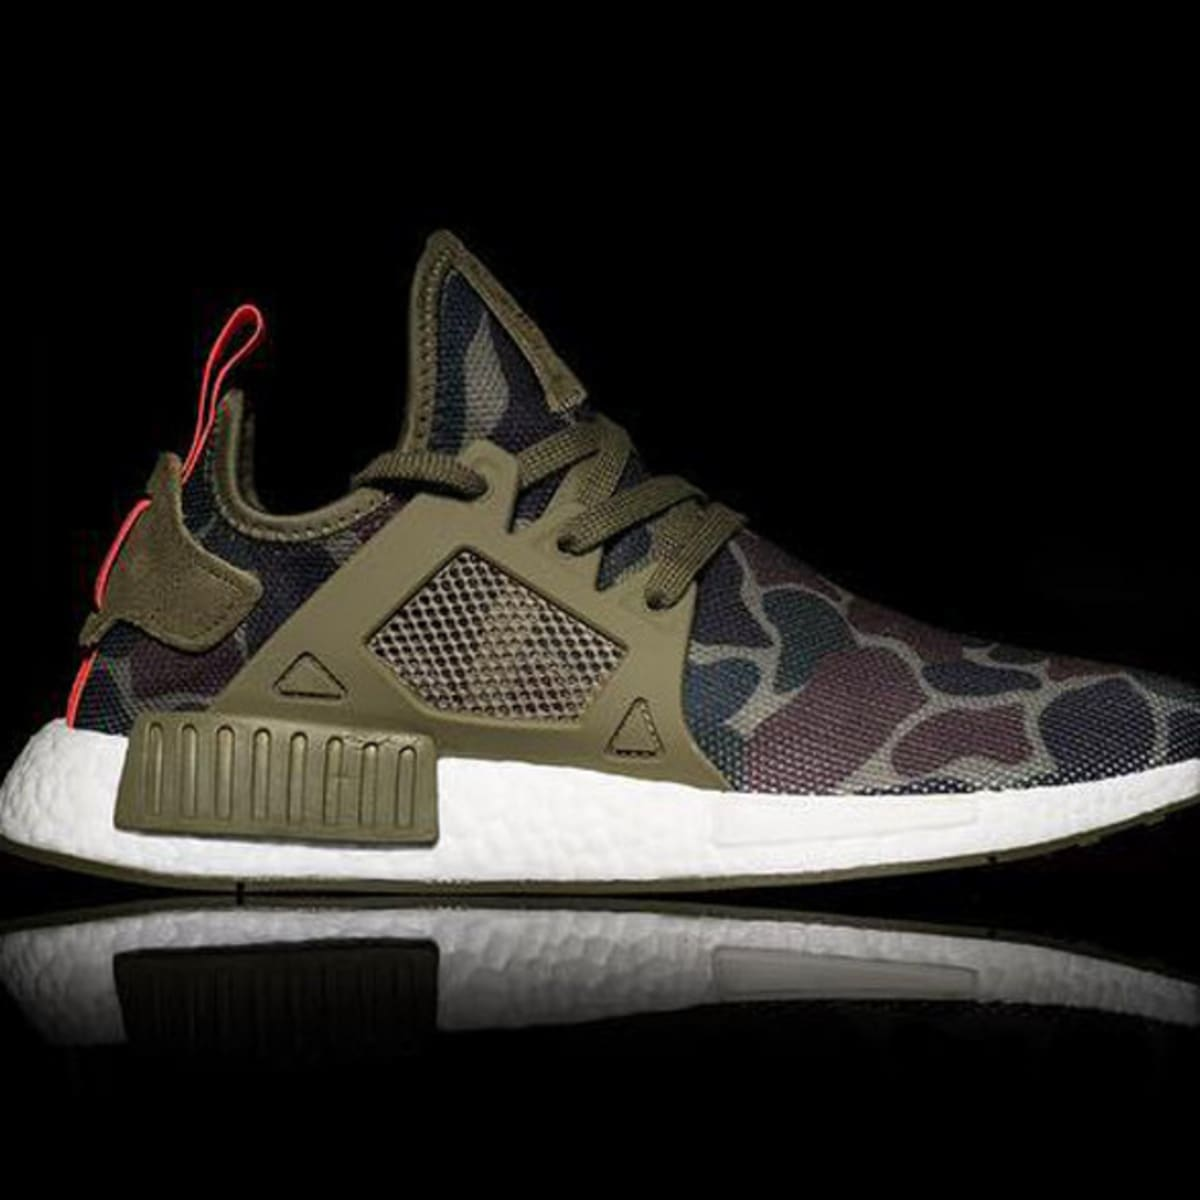 The adidas NMD XR1 Is Launching in Duck Camo - Freshness Mag